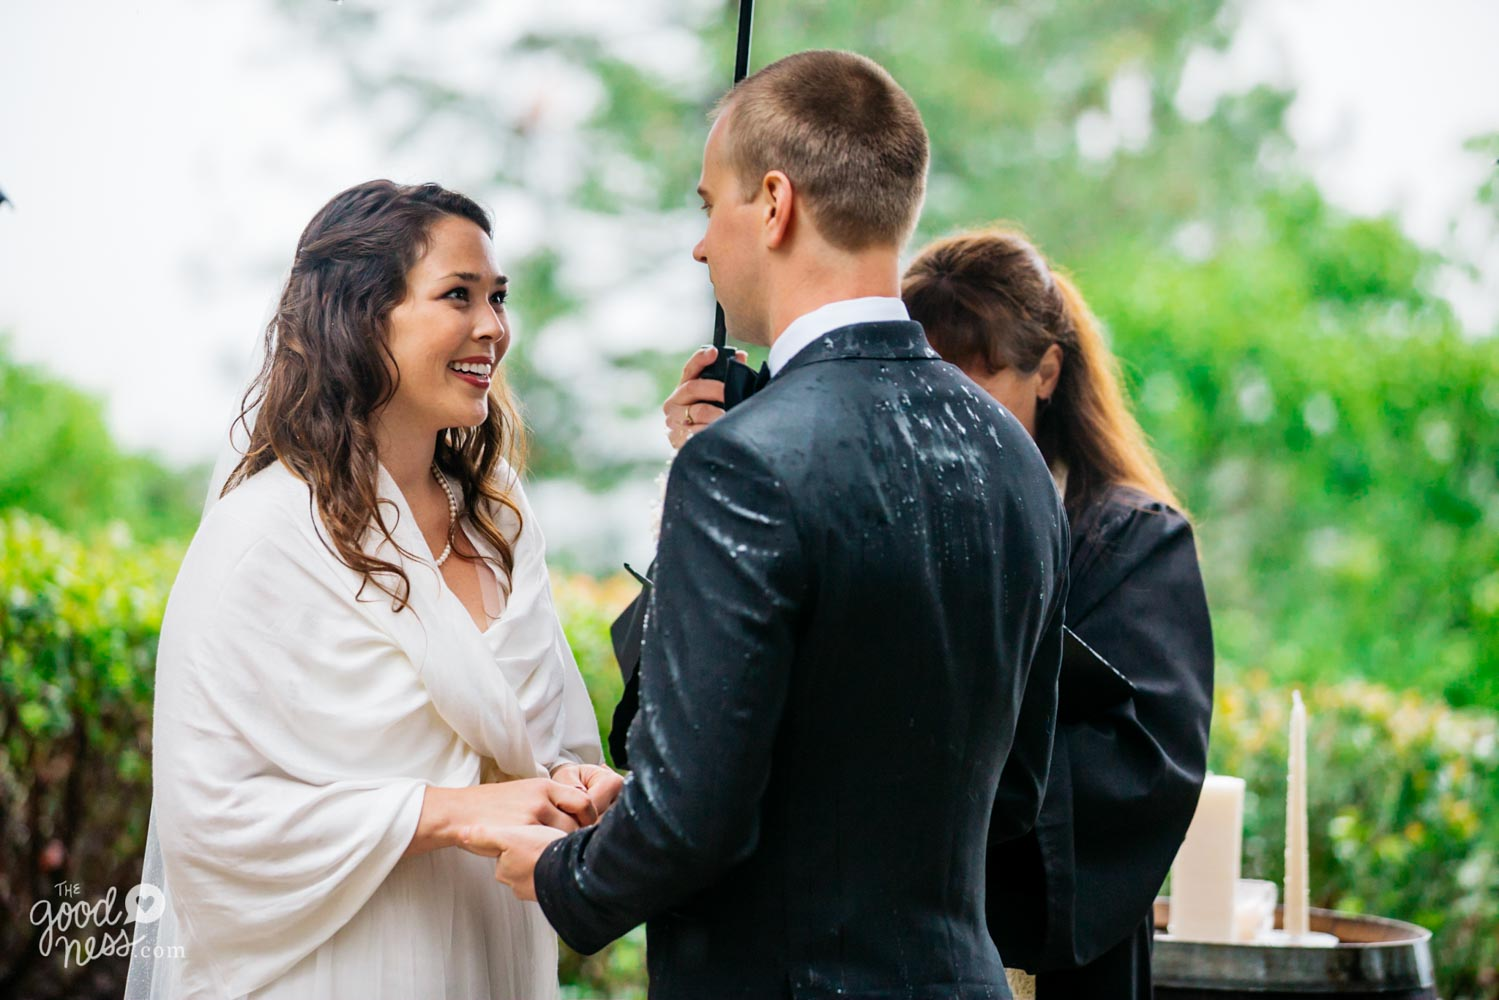 Bride smiling at groom, whose suit jacket is wet with rain, while officiant holds umbrella in background.